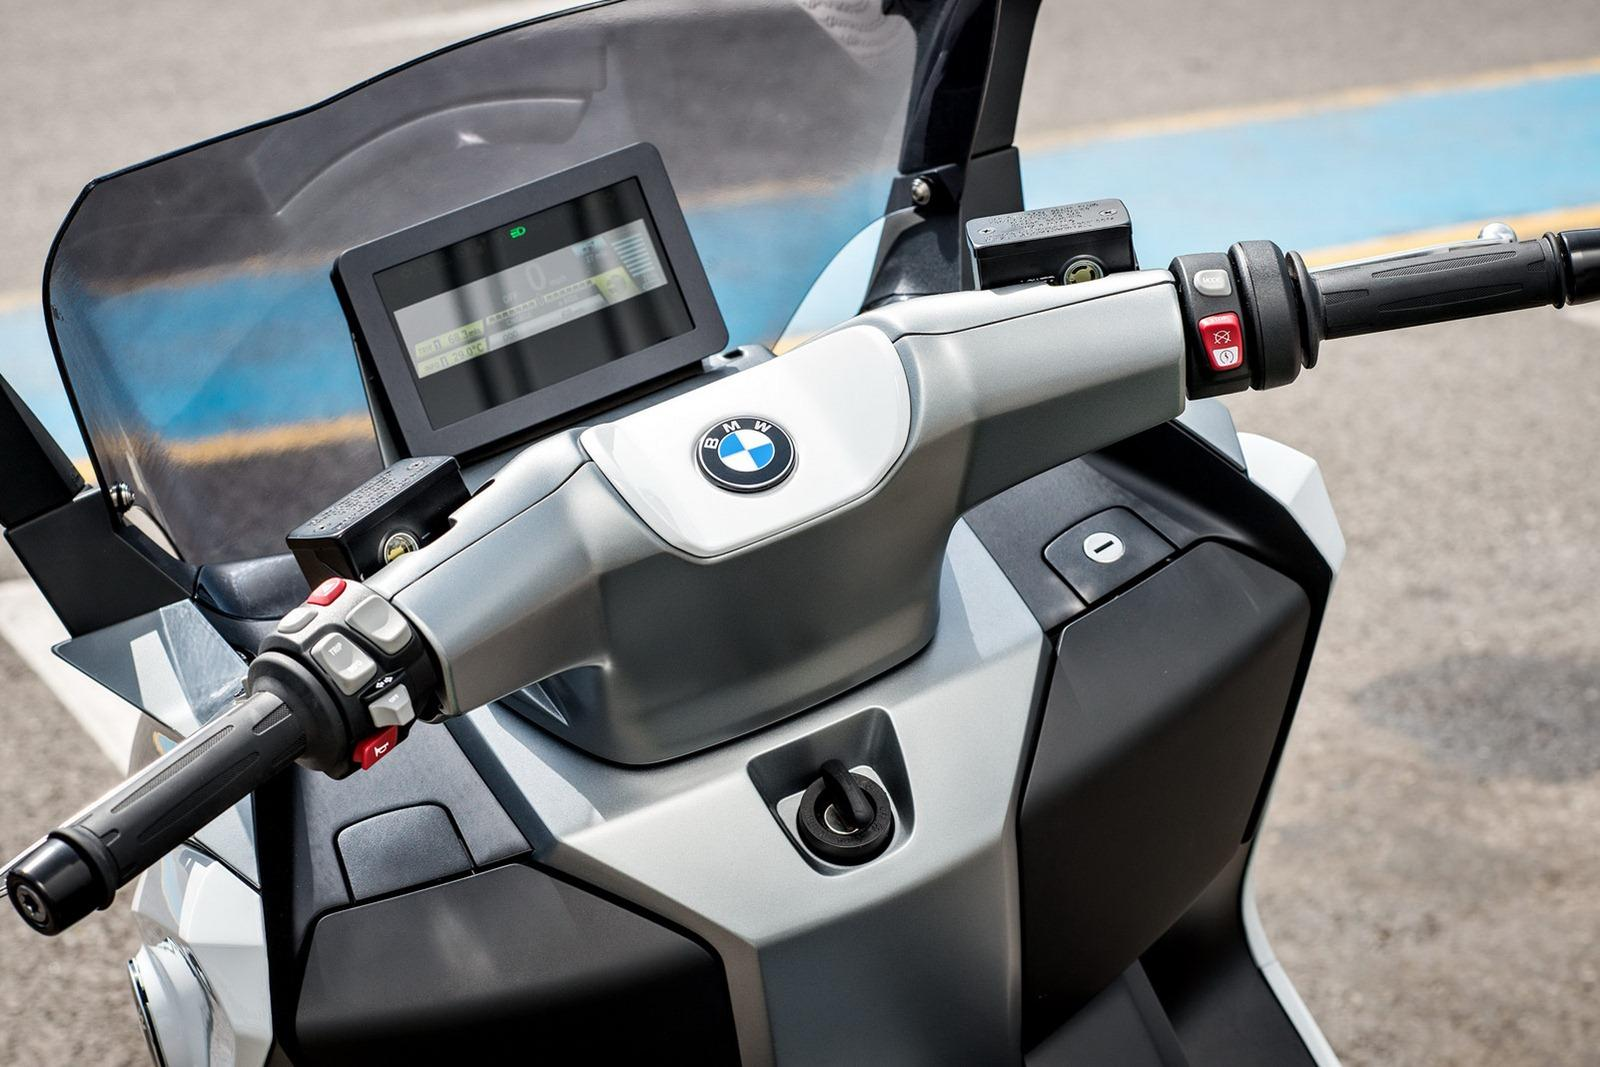 2014 BMW C Evolution Electric Scooter 9 BMW Motorrad to Release 2014 C Evolution Electric Scooter